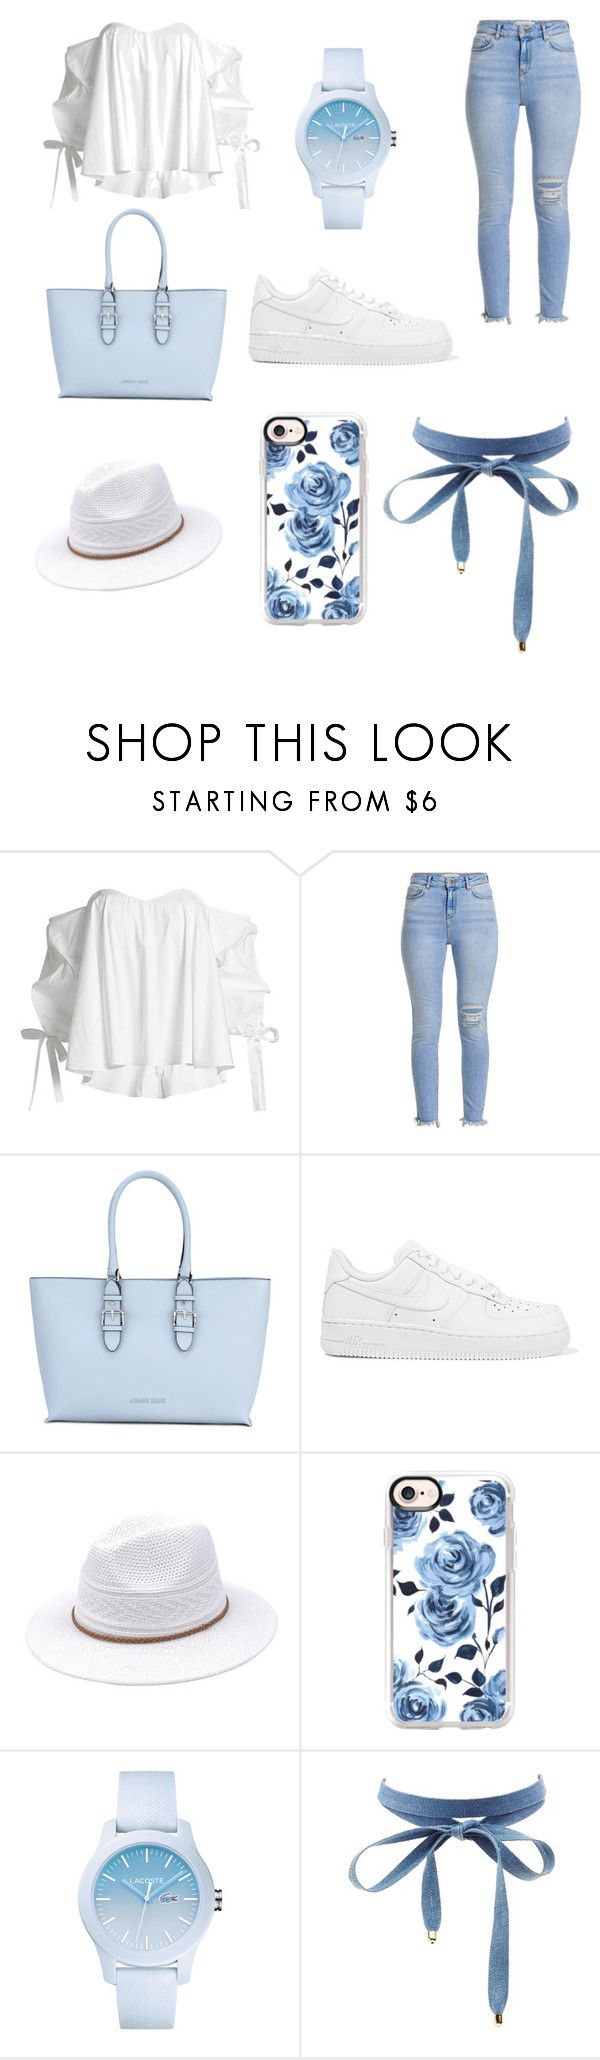 """""""bluuuu"""" by stellabellaboll ❤ liked on Polyvore featuring Caroline Constas, Armani Jeans, NIKE, Casetify, Lacoste and Charlotte Russe"""